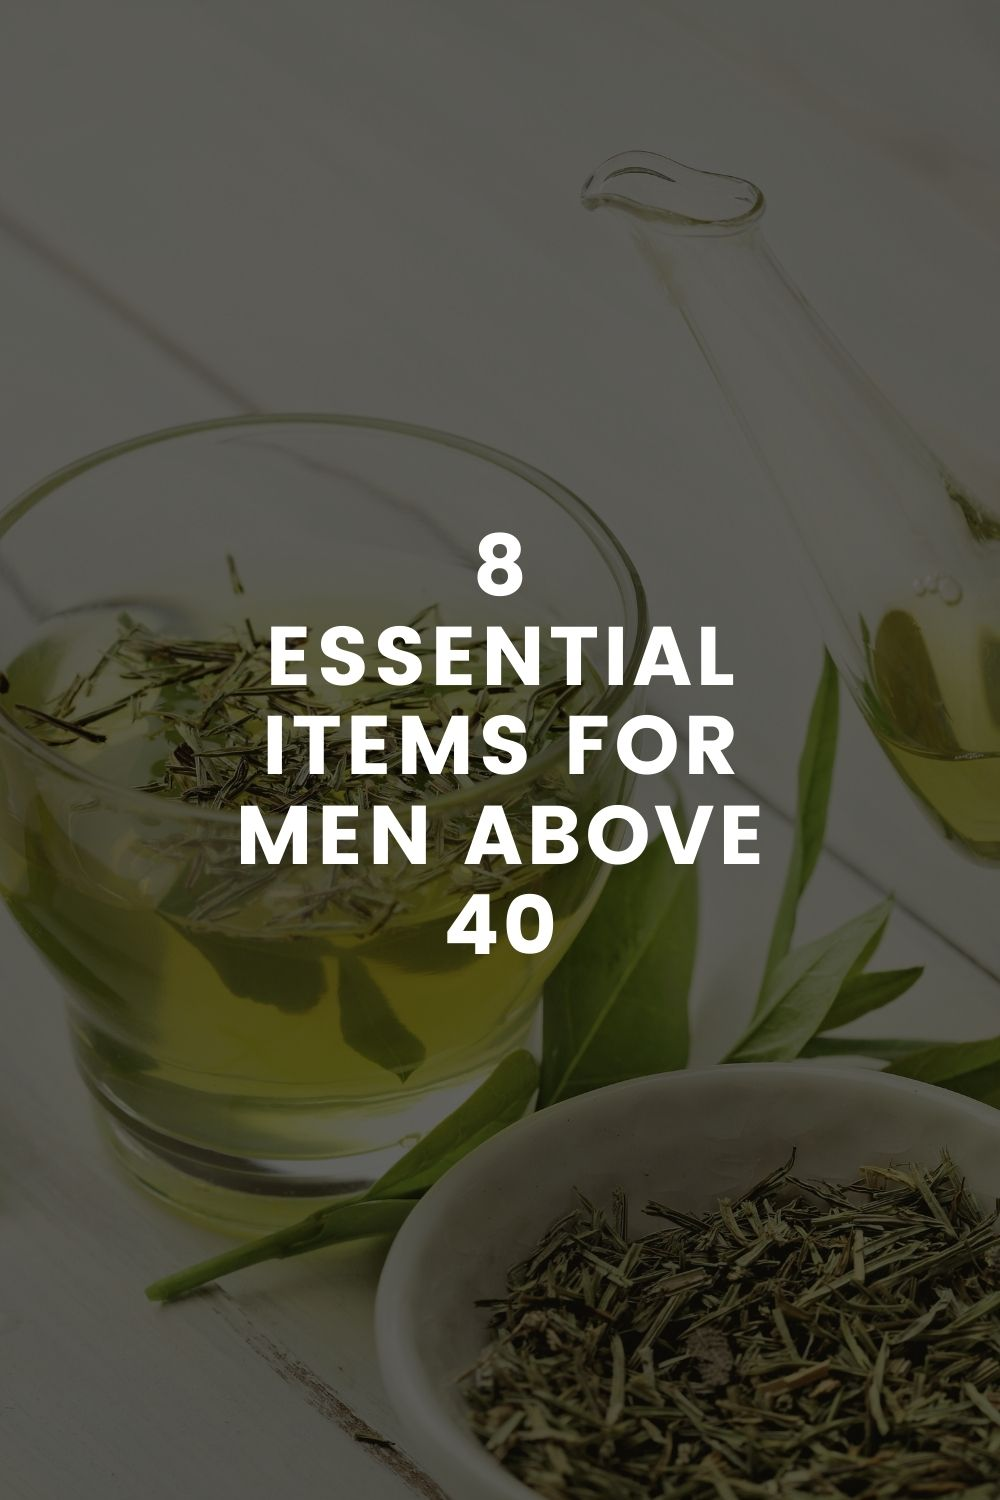 8 Essential Items For Men Above 40